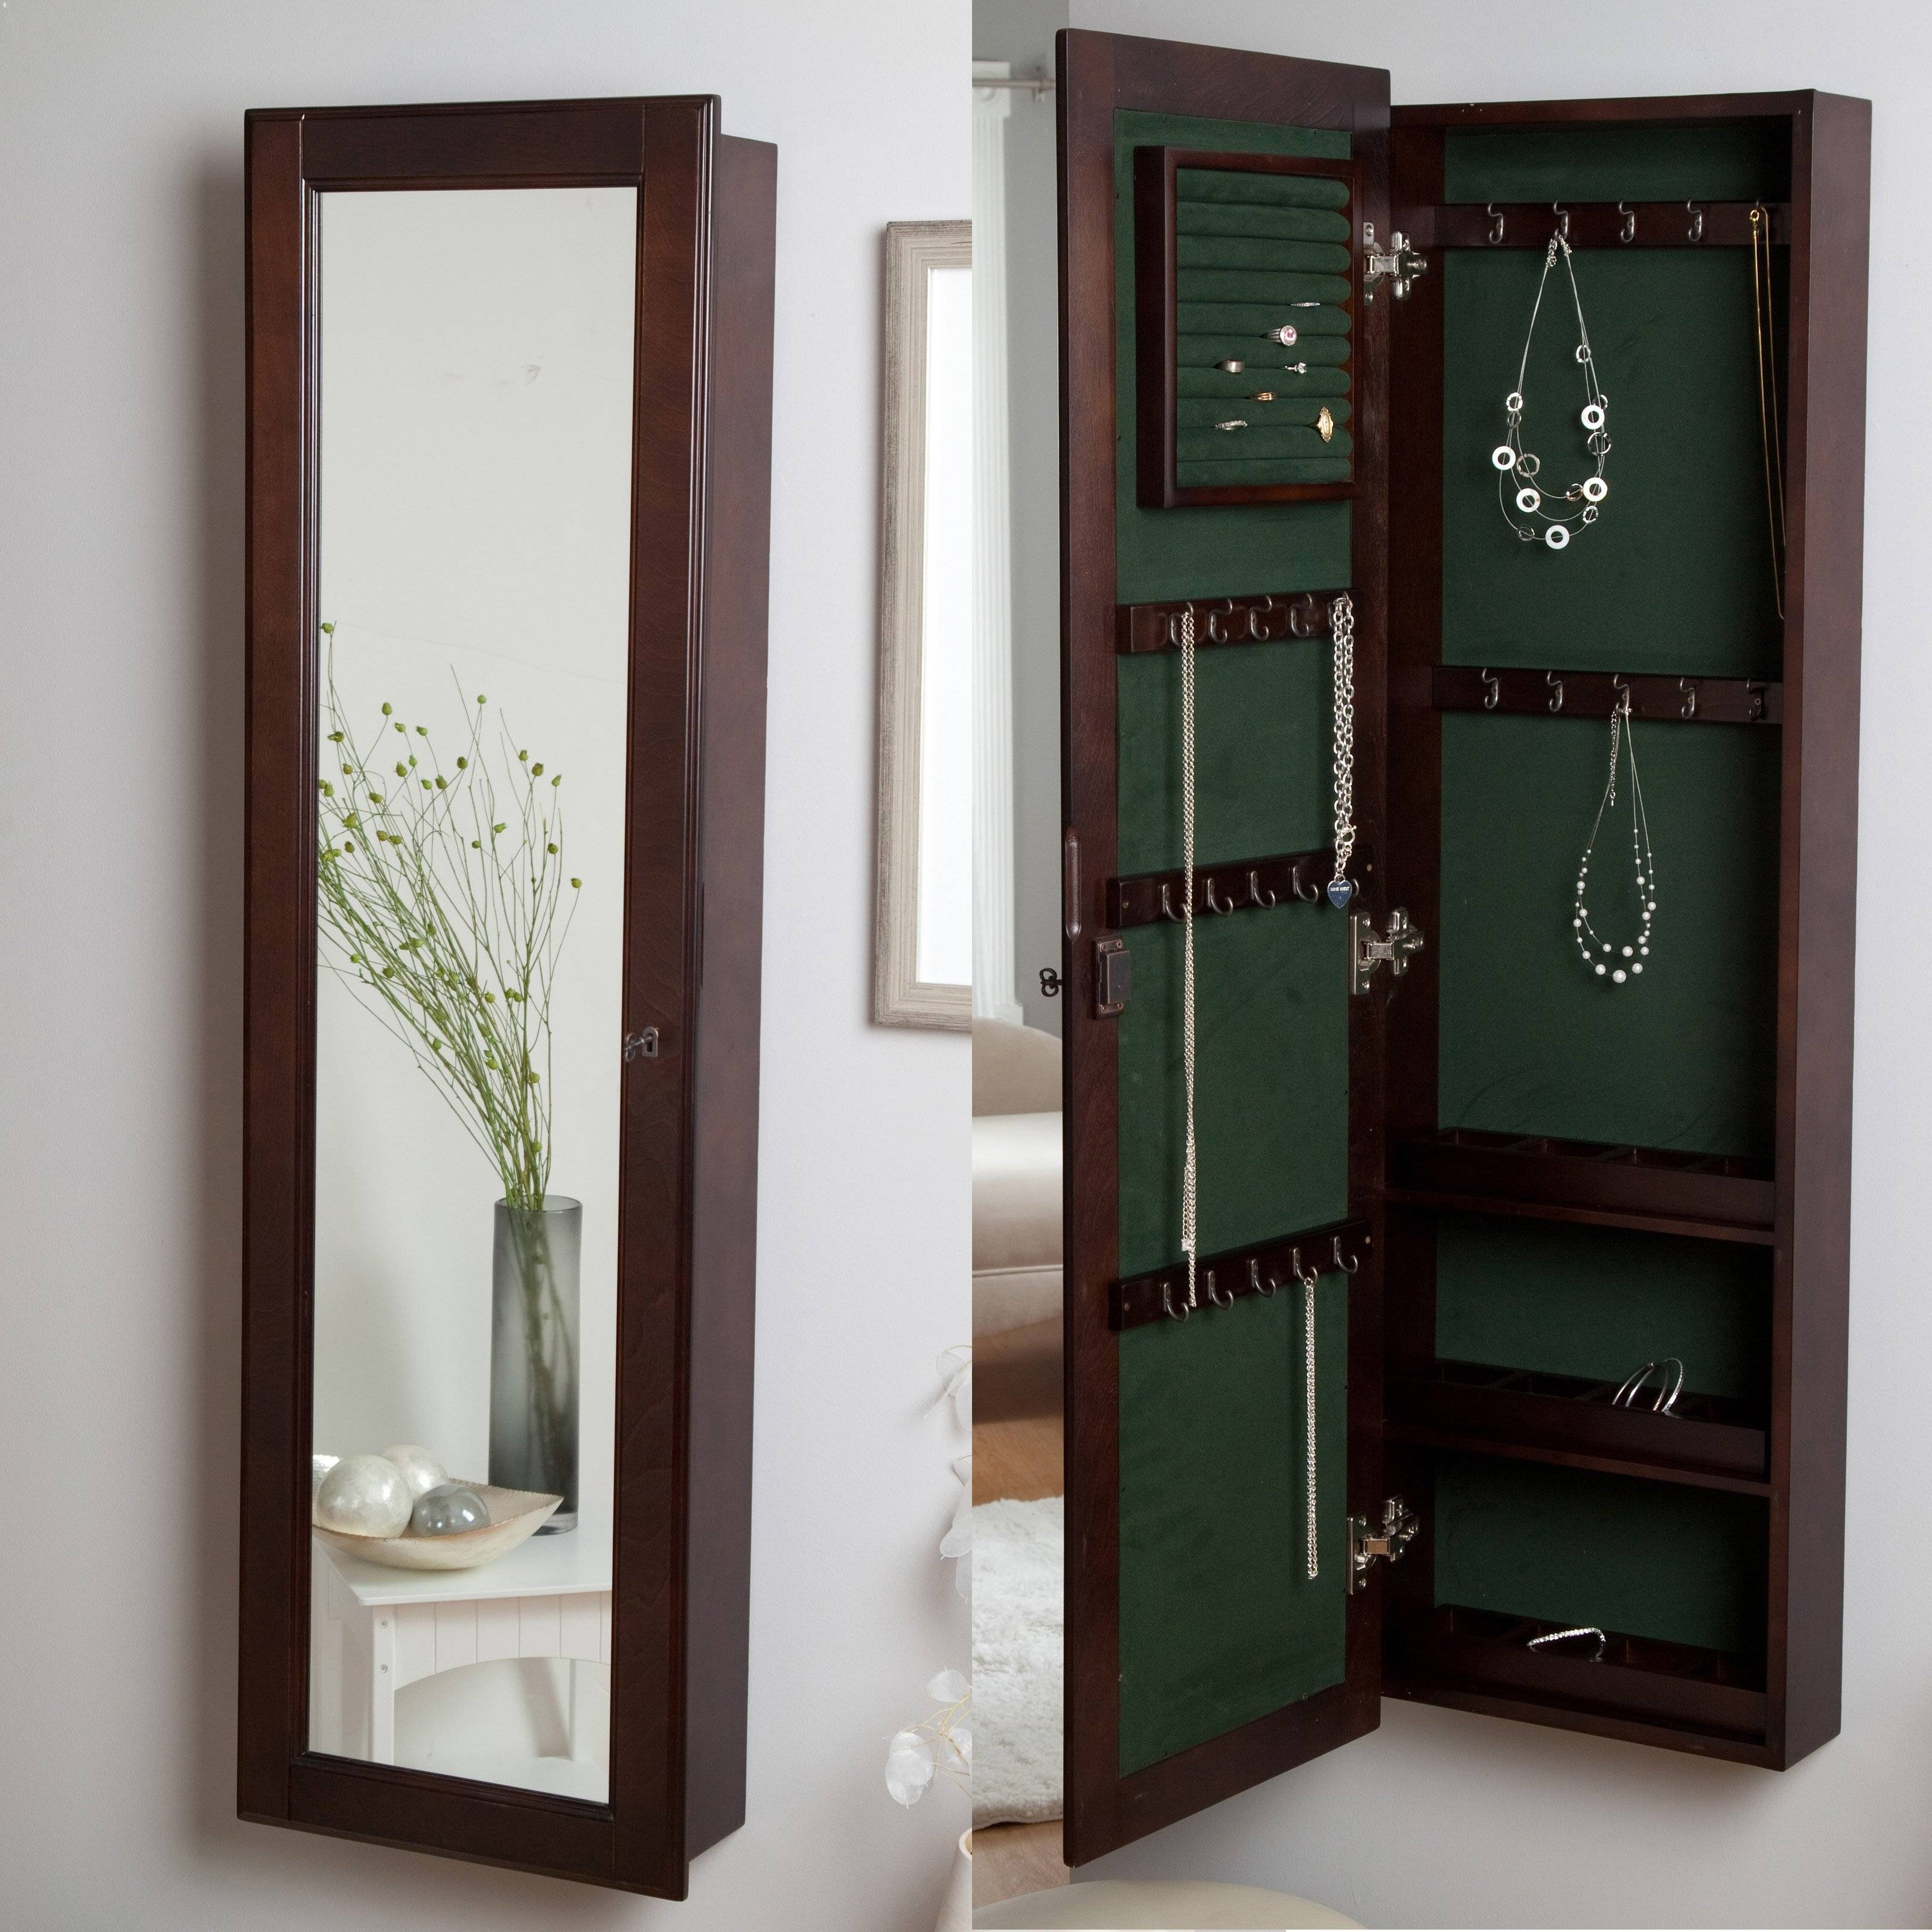 Bedroom Furniture Sets : Frameless Wall Mirror Venetian Mirror Intended For Square Venetian Mirrors (View 7 of 25)